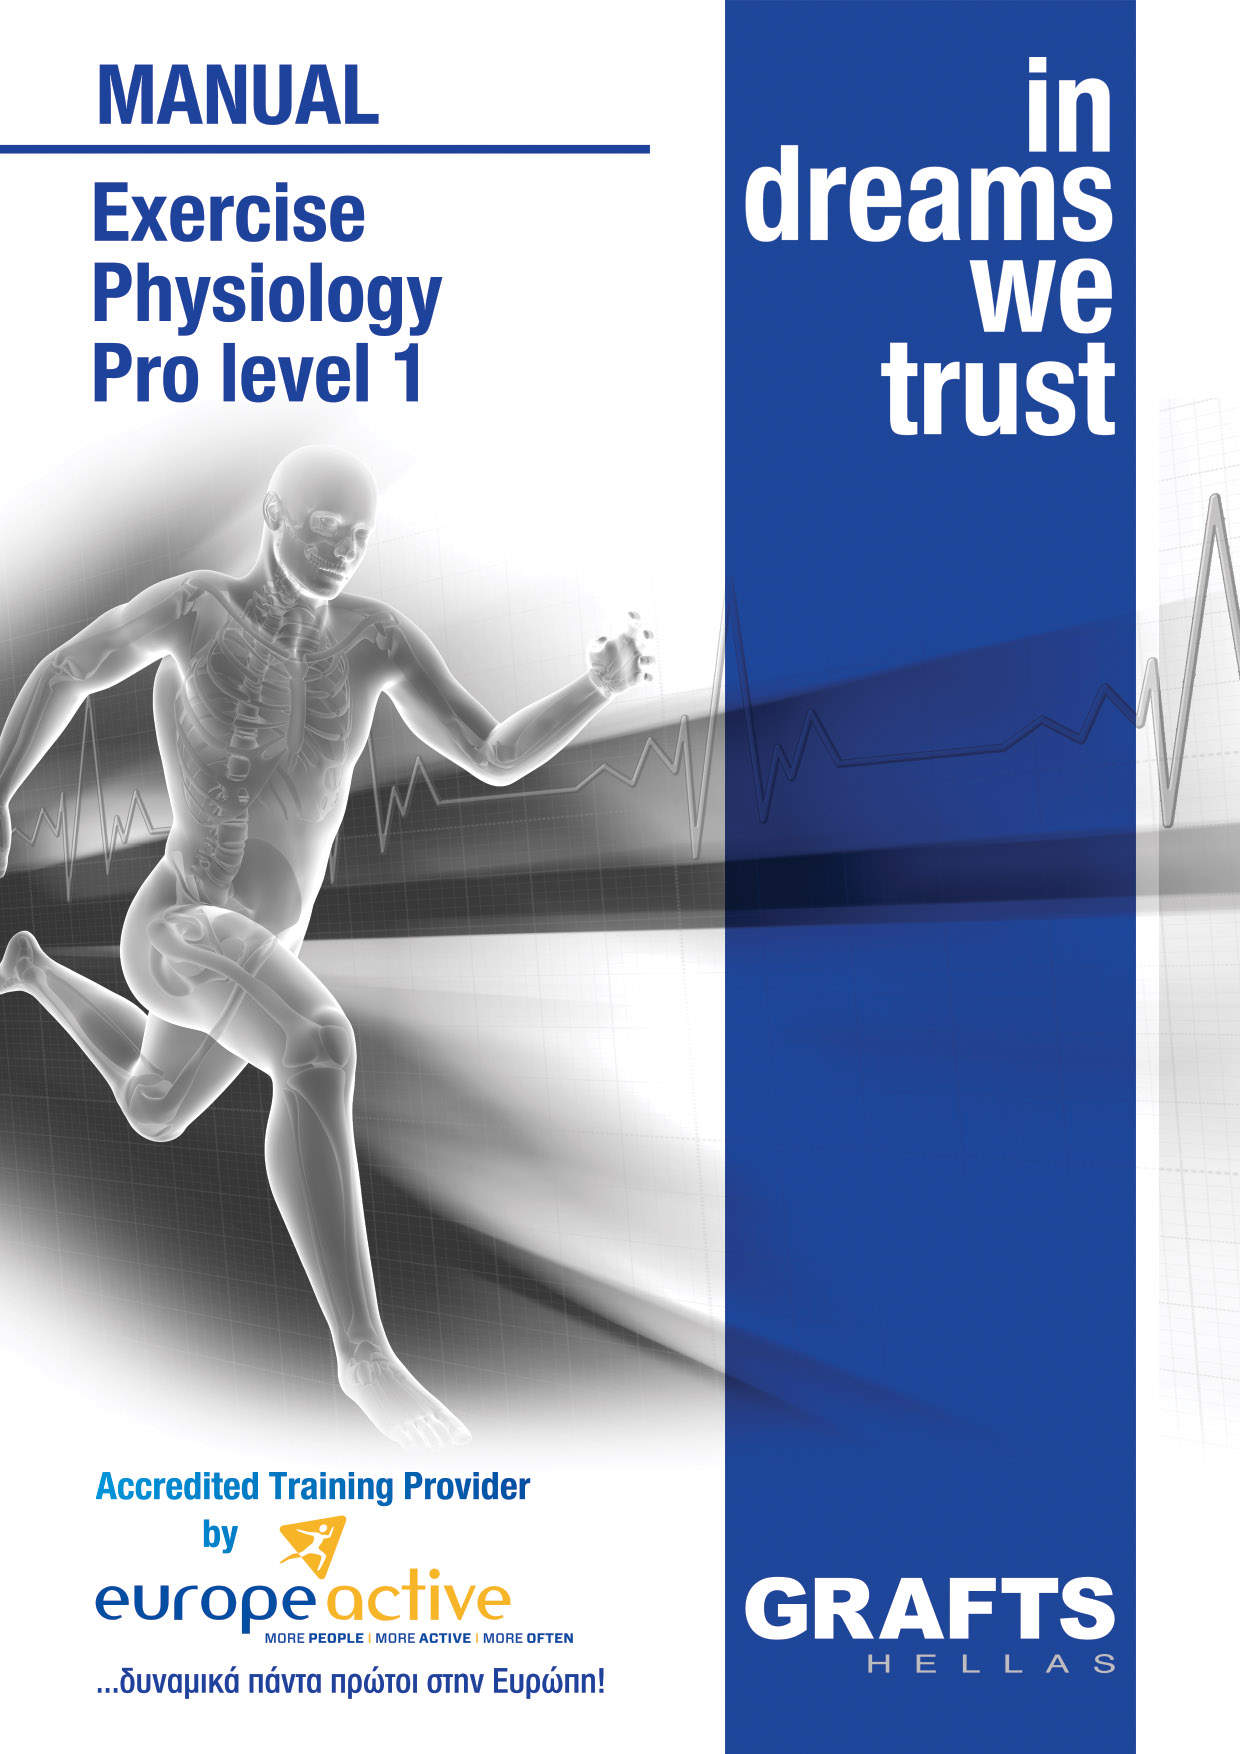 Grafts Hellas manual - Exercise Physiology - Pro Level 1